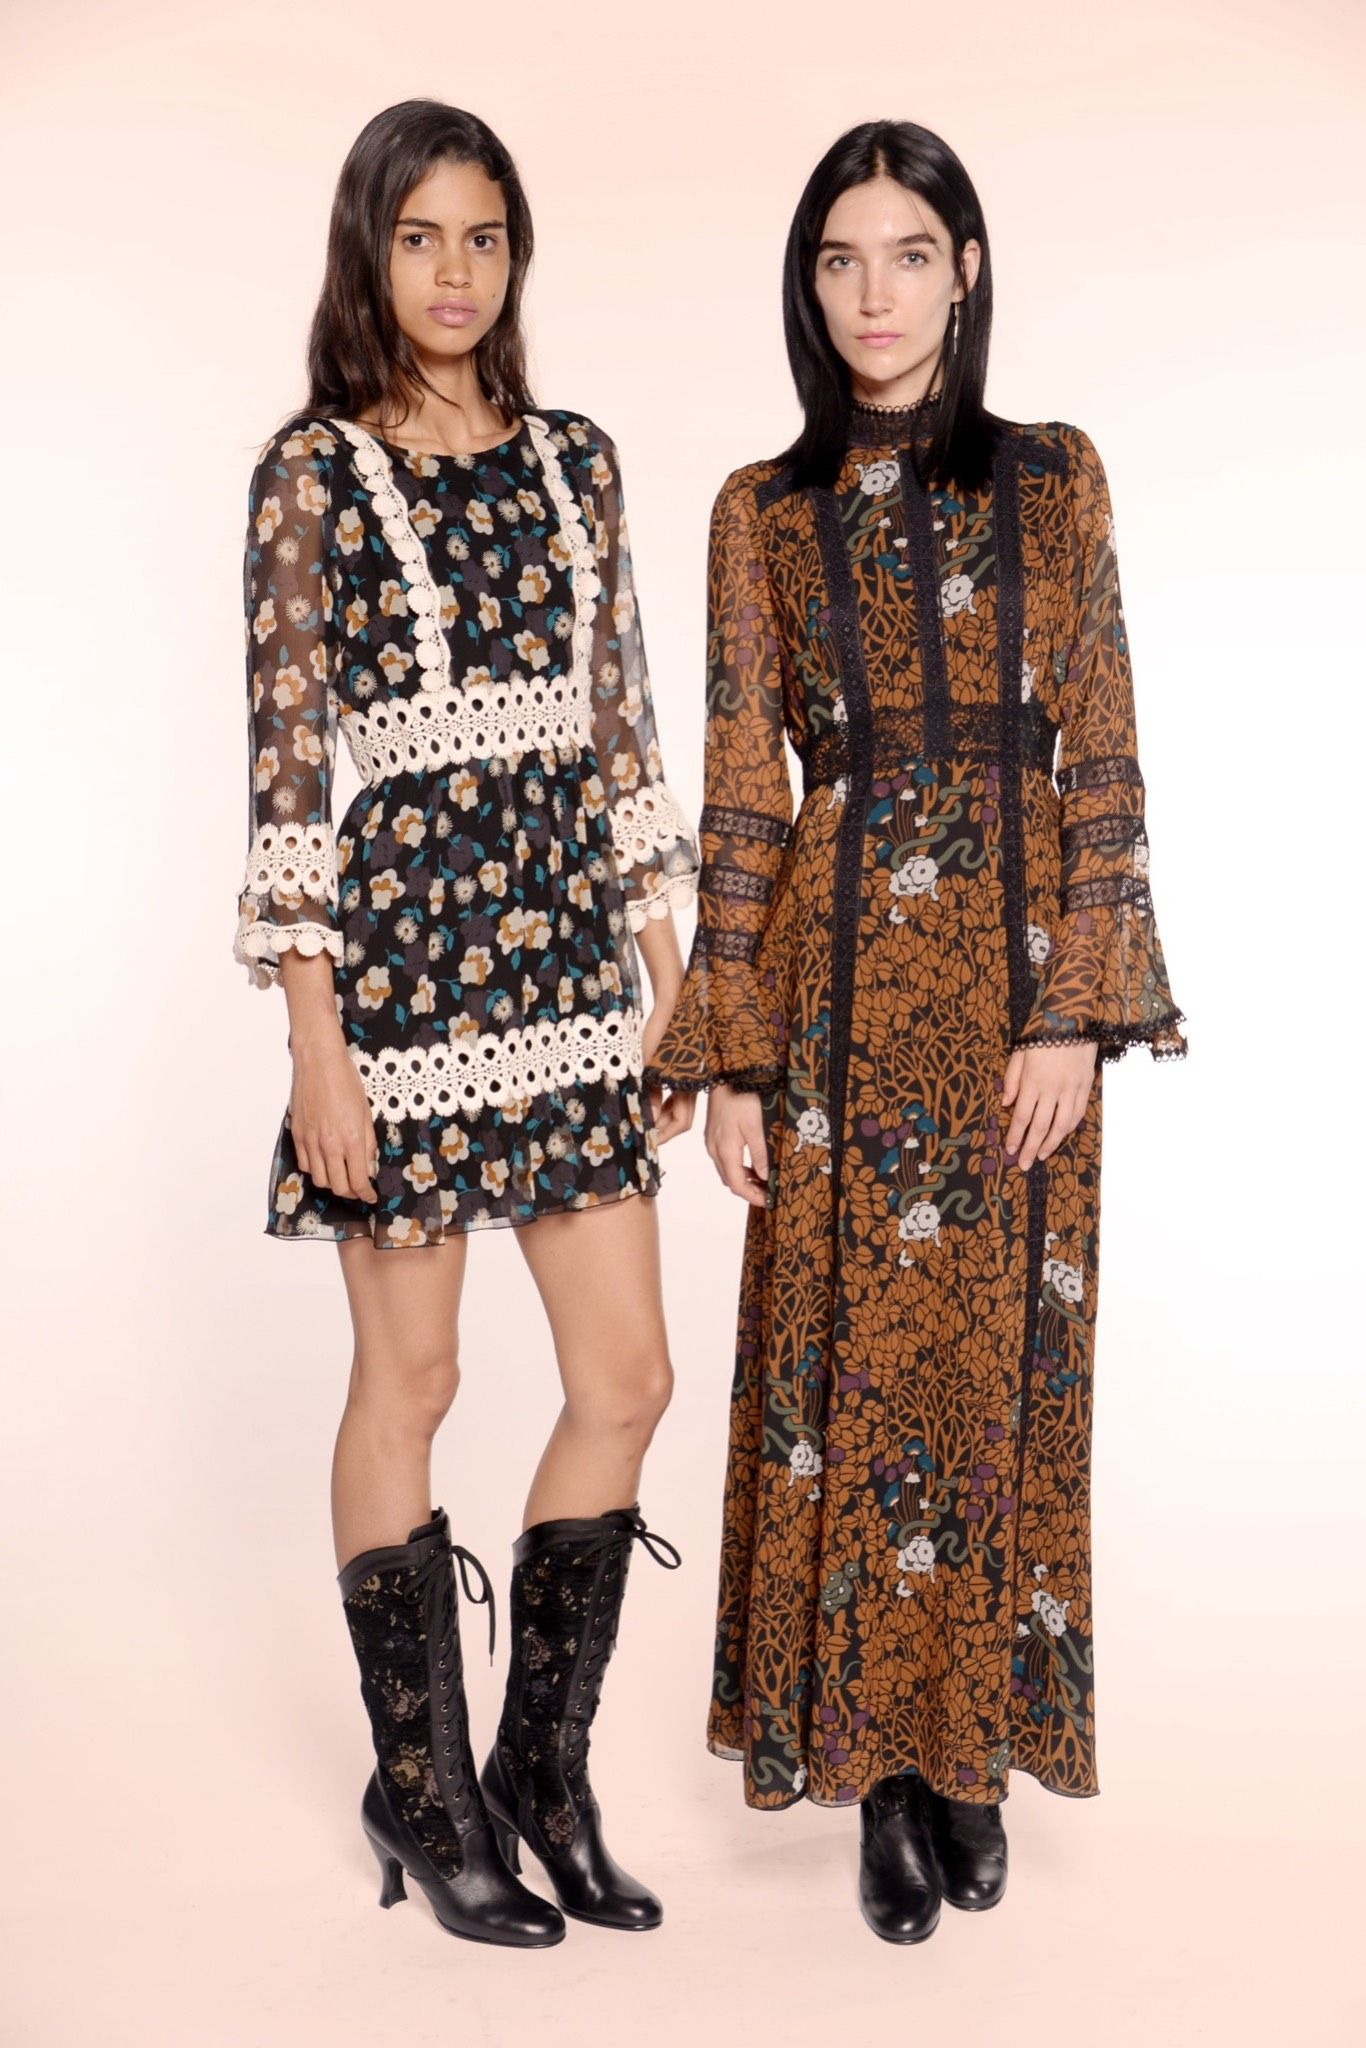 Anna sui resort collection gallery style wishlist